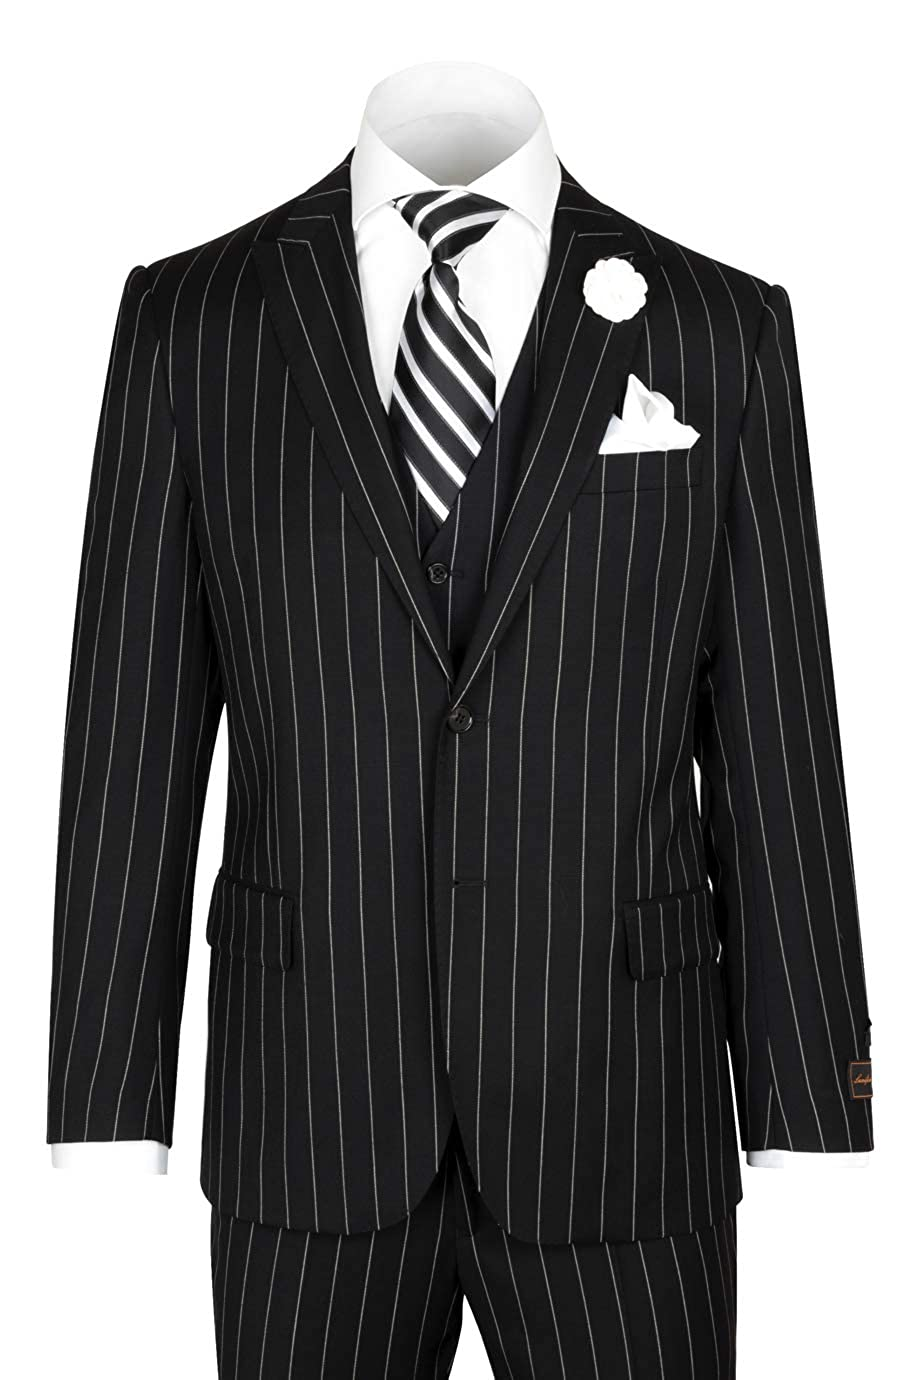 1940s Zoot Suit History & Buy Modern Zoot Suits Tiglio Luxe Tufo Modern Fit Black Pin-Stripe Pure Wool Suit & Vest TIG1052 $399.00 AT vintagedancer.com